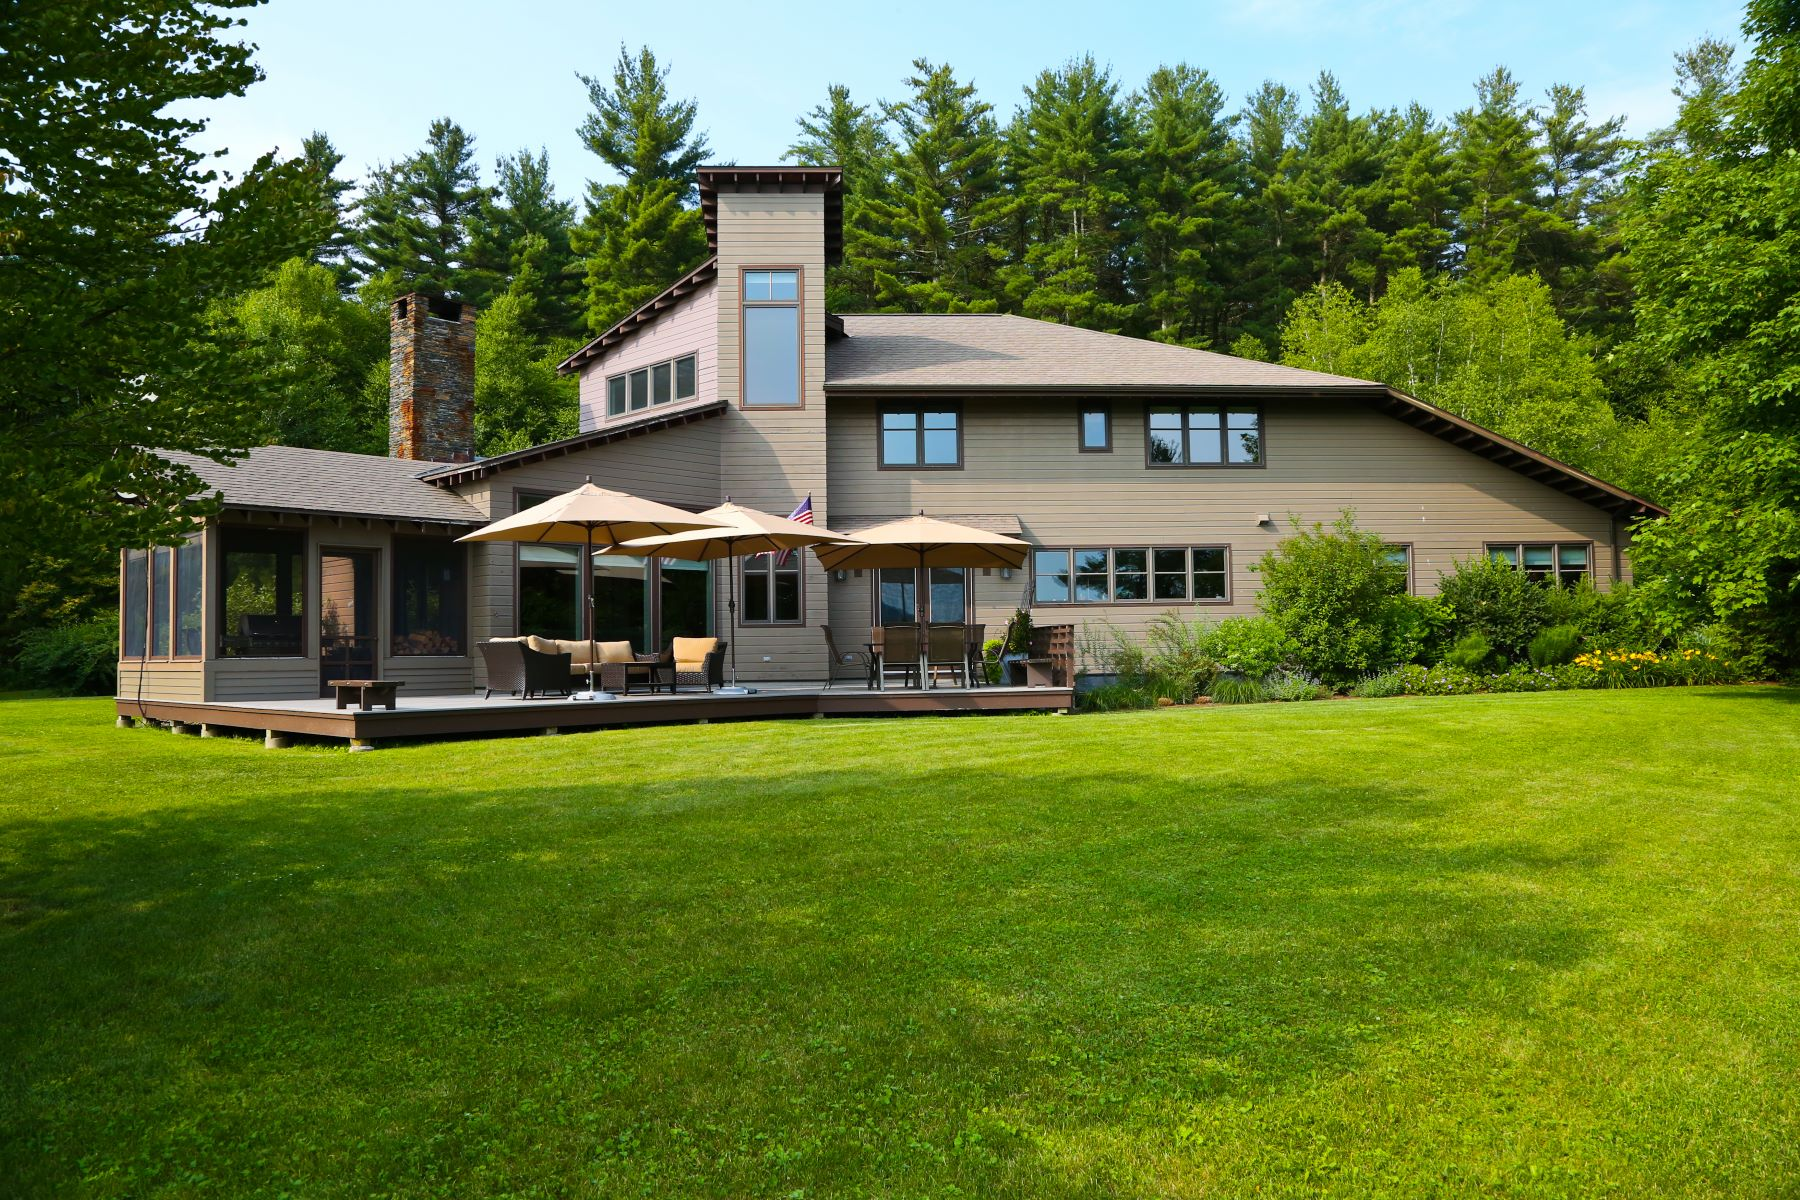 Single Family Homes for Active at Turn-Key Alford Contemporary with Spectacular Mountain Views! 54 Crooked Hill Rd Great Barrington, Massachusetts 01230 United States